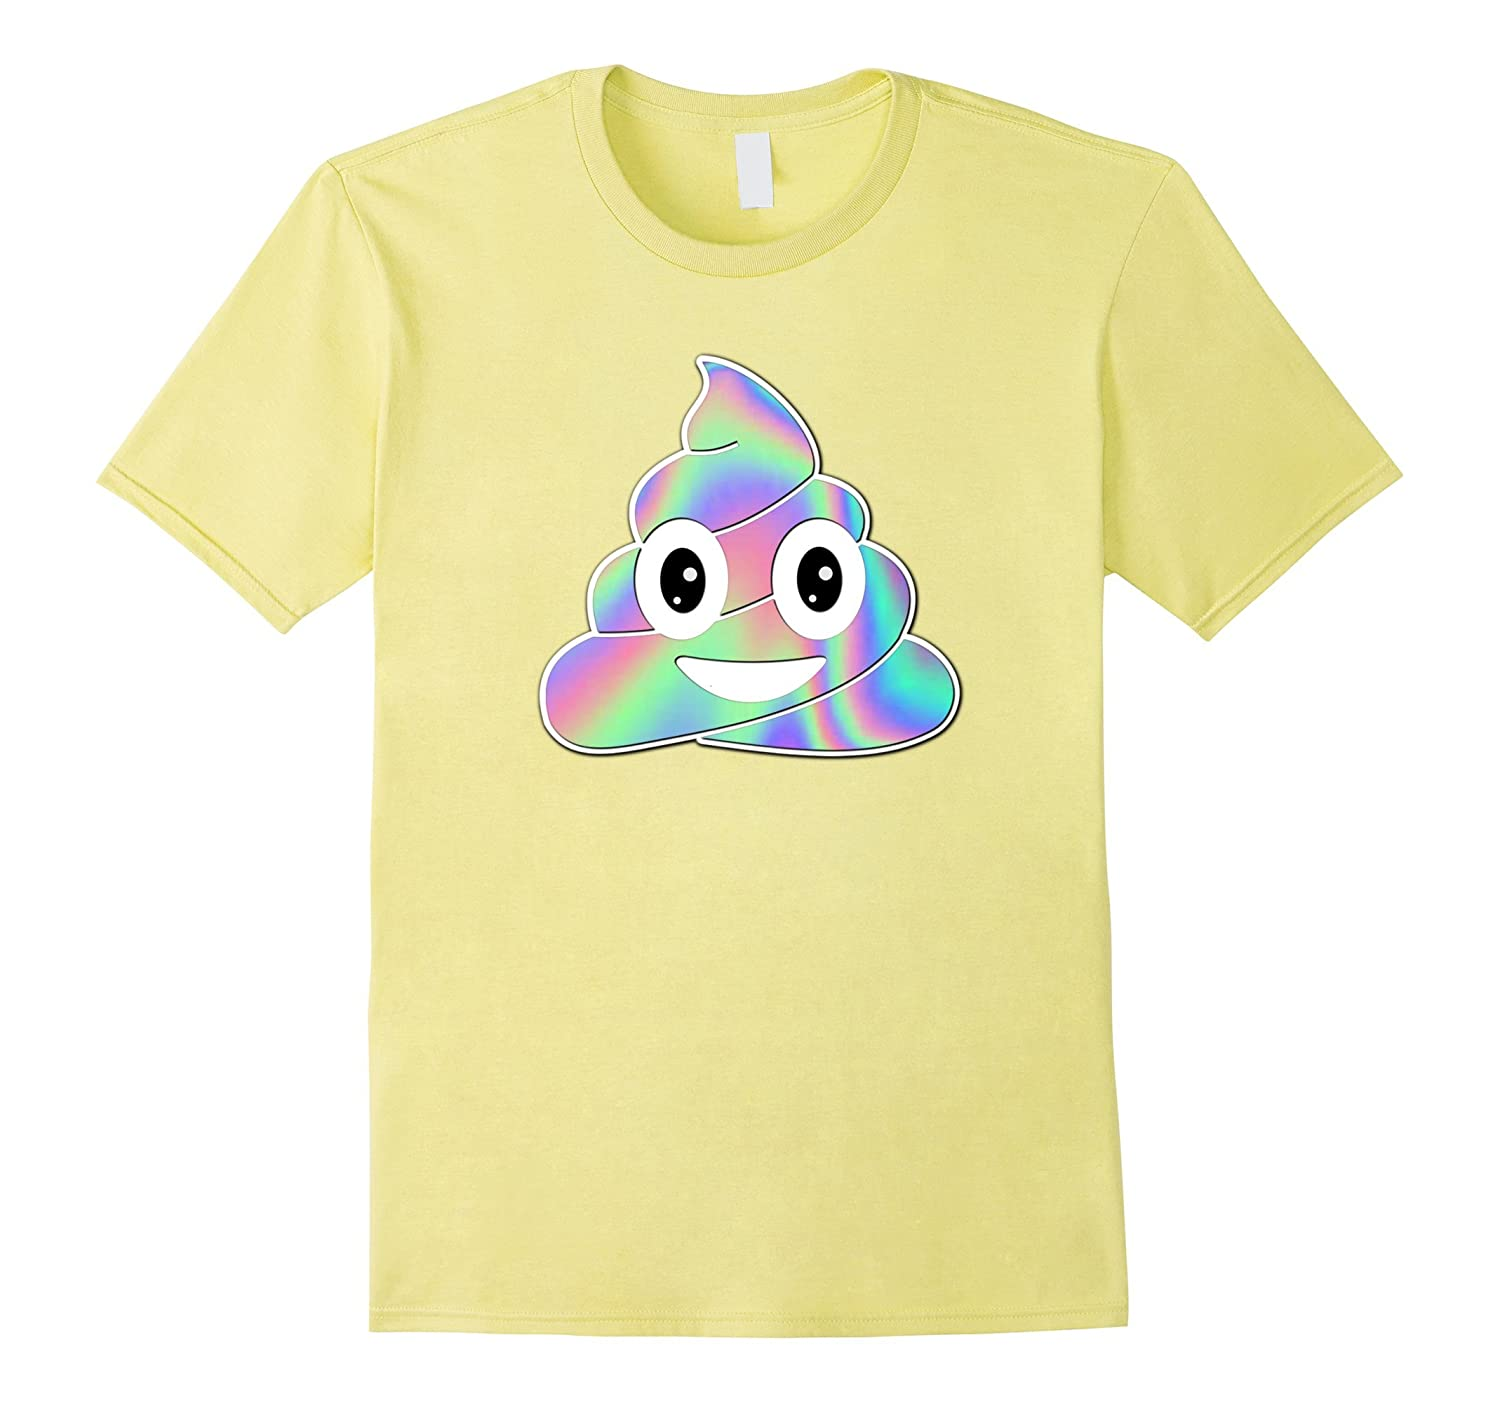 Unicorn Poop Emoji HOLO T-Shirt Women Girls Kids Graphic Tee